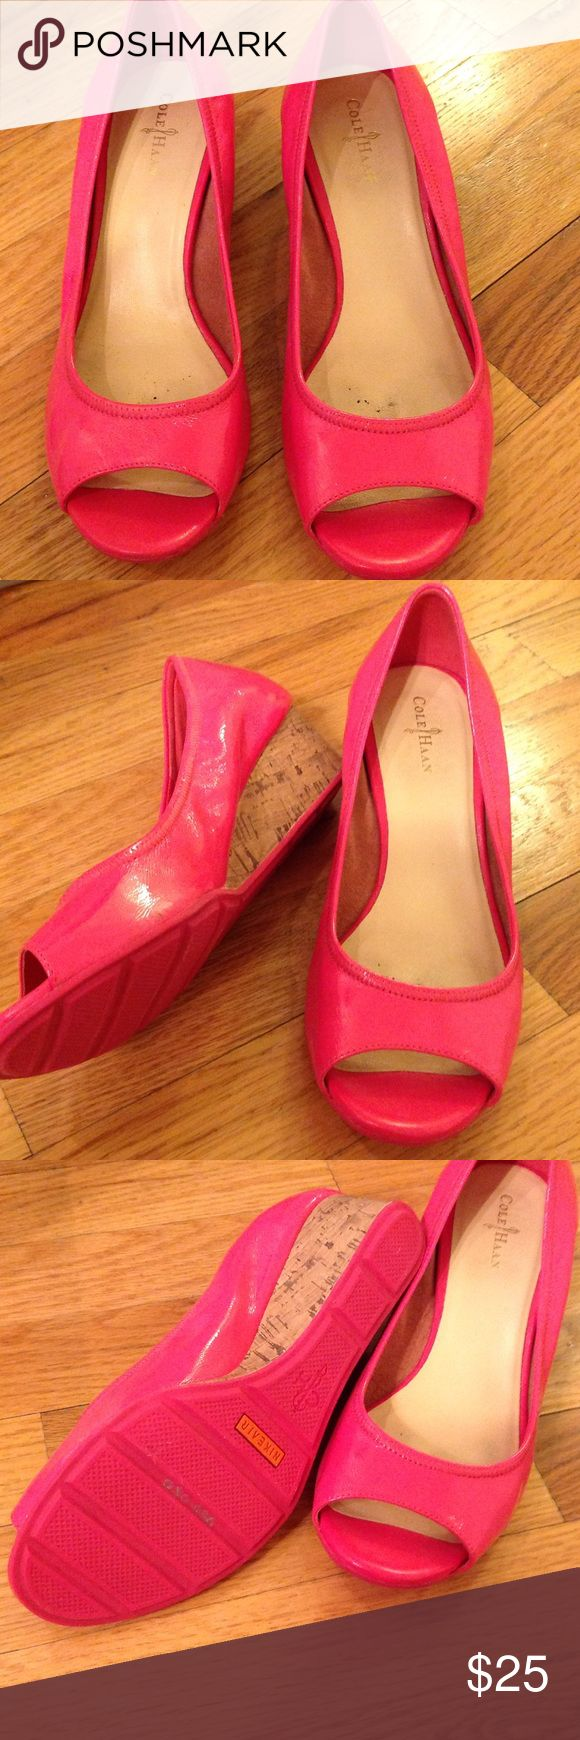 Almost new Cole Haan Nike Air pink wedges so 8 Patent leather hot pink wedges with cork. Barely worn. Cole Haan Shoes Wedges